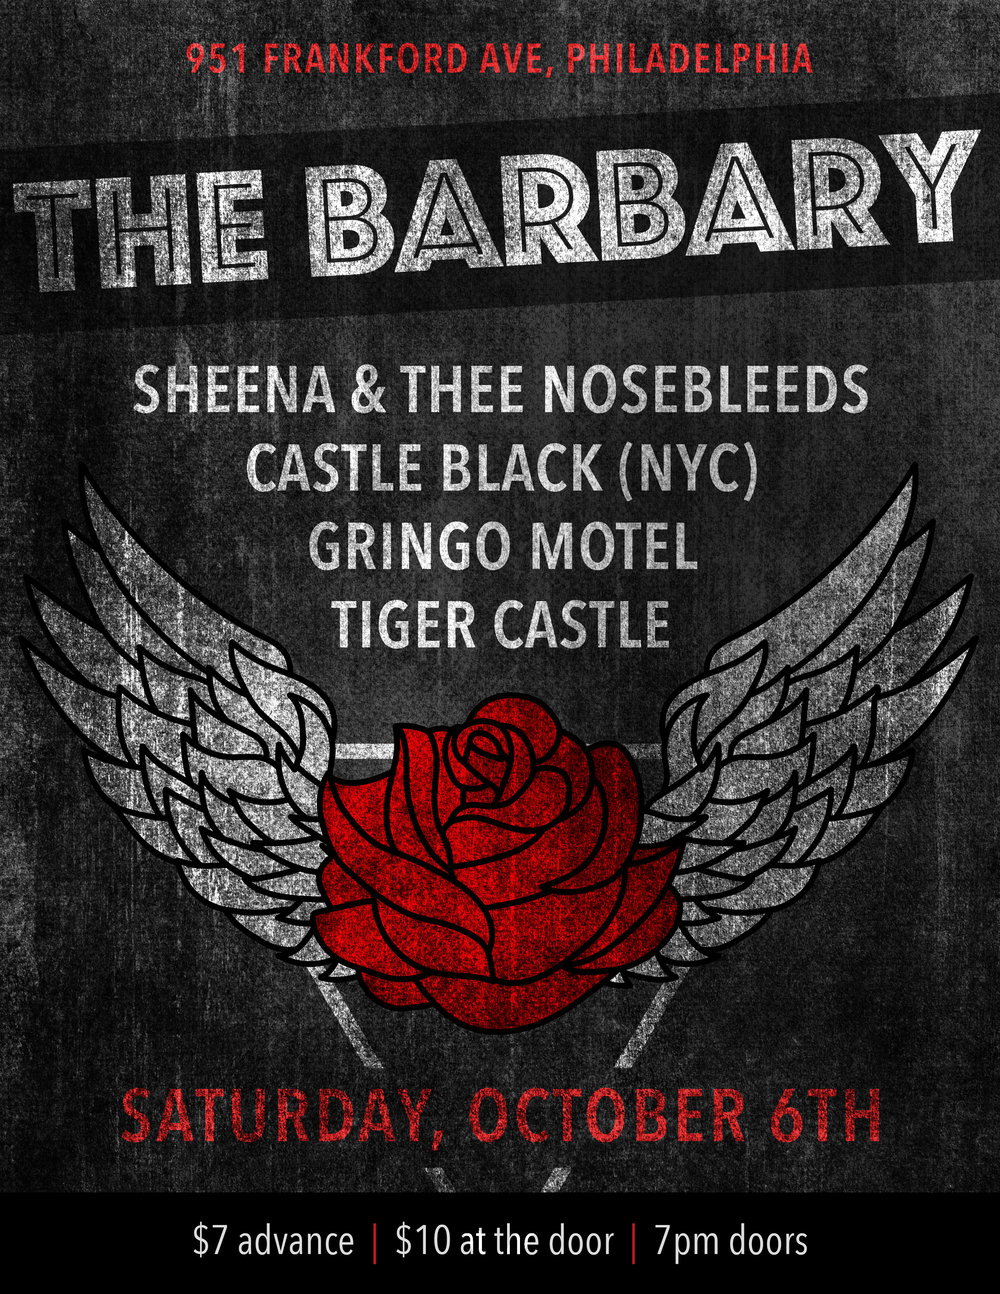 Flyer_Oct06_Barbary_2aa.jpg